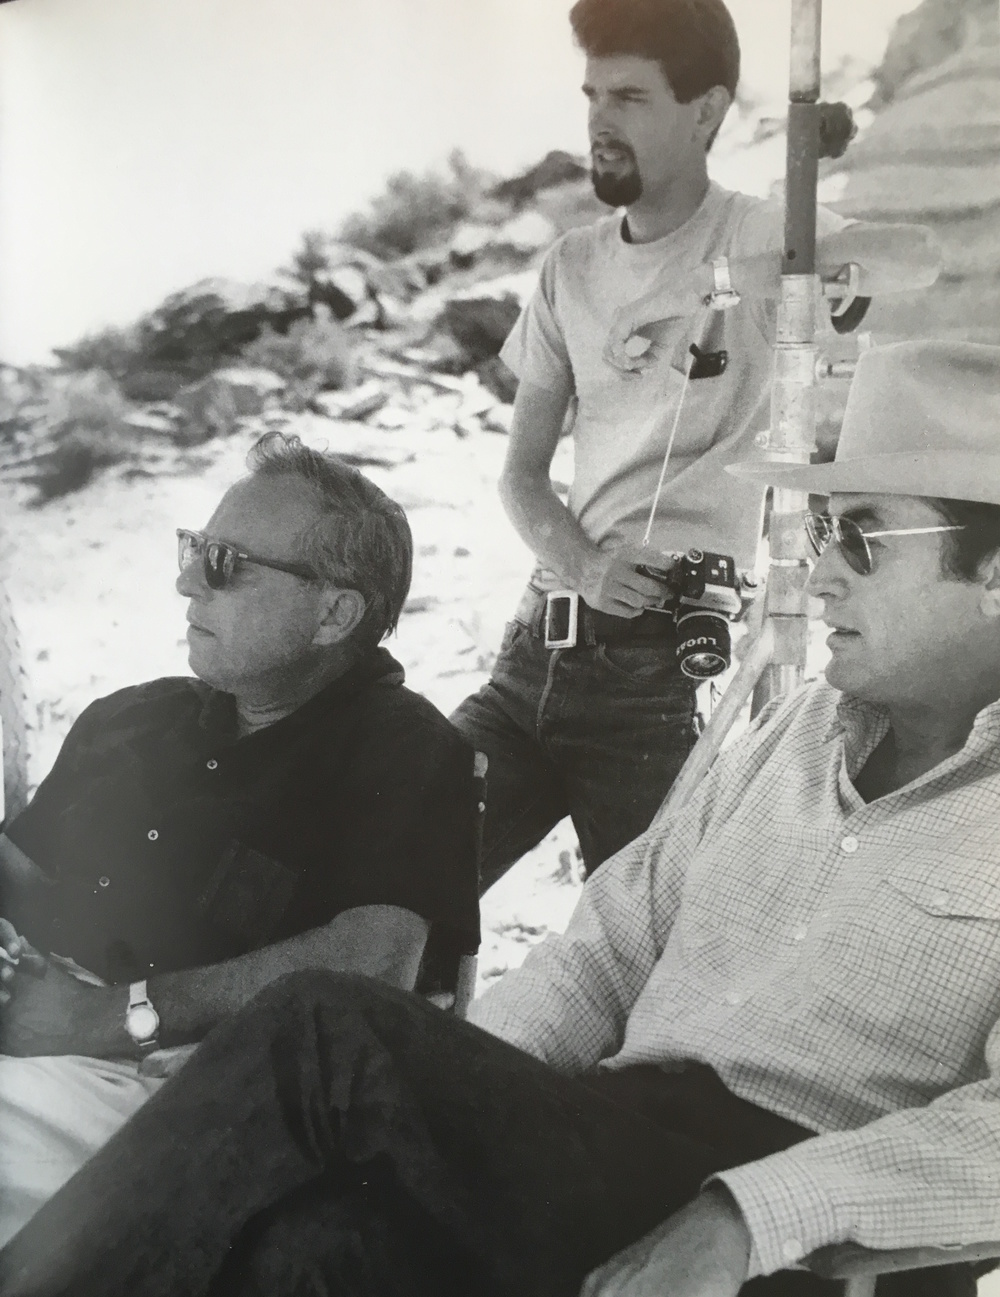 Lucas, ca 23yo with Carl Foreman (left) and Gregory Peck (right) on location in Utah or Arizona in 1967.